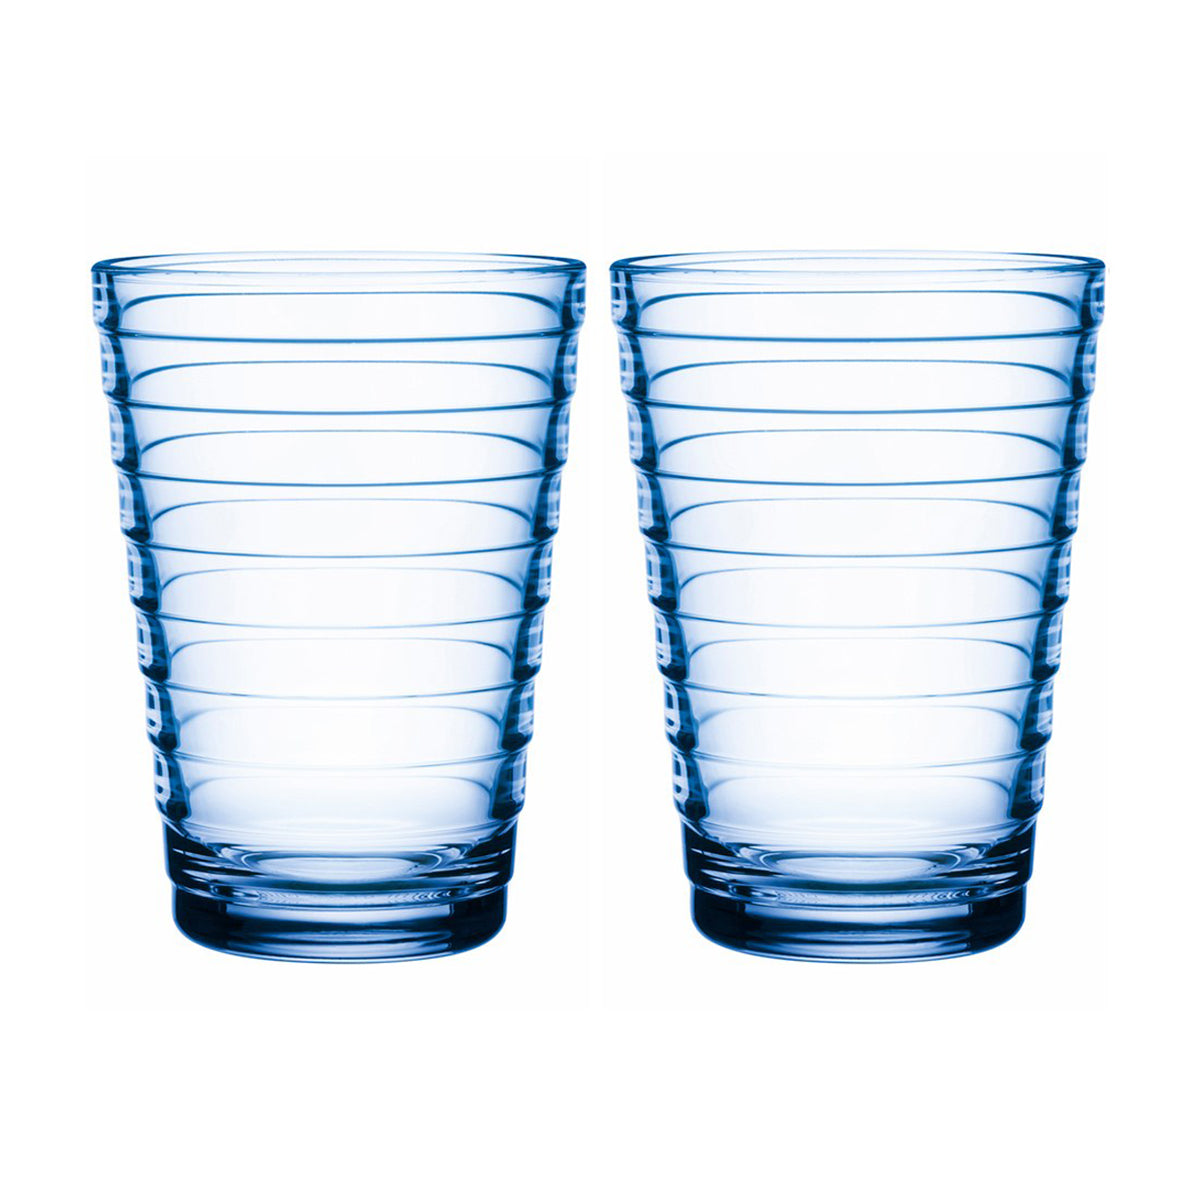 Aino Aalto Highball Tumblers Aqua 330ml / Set 2